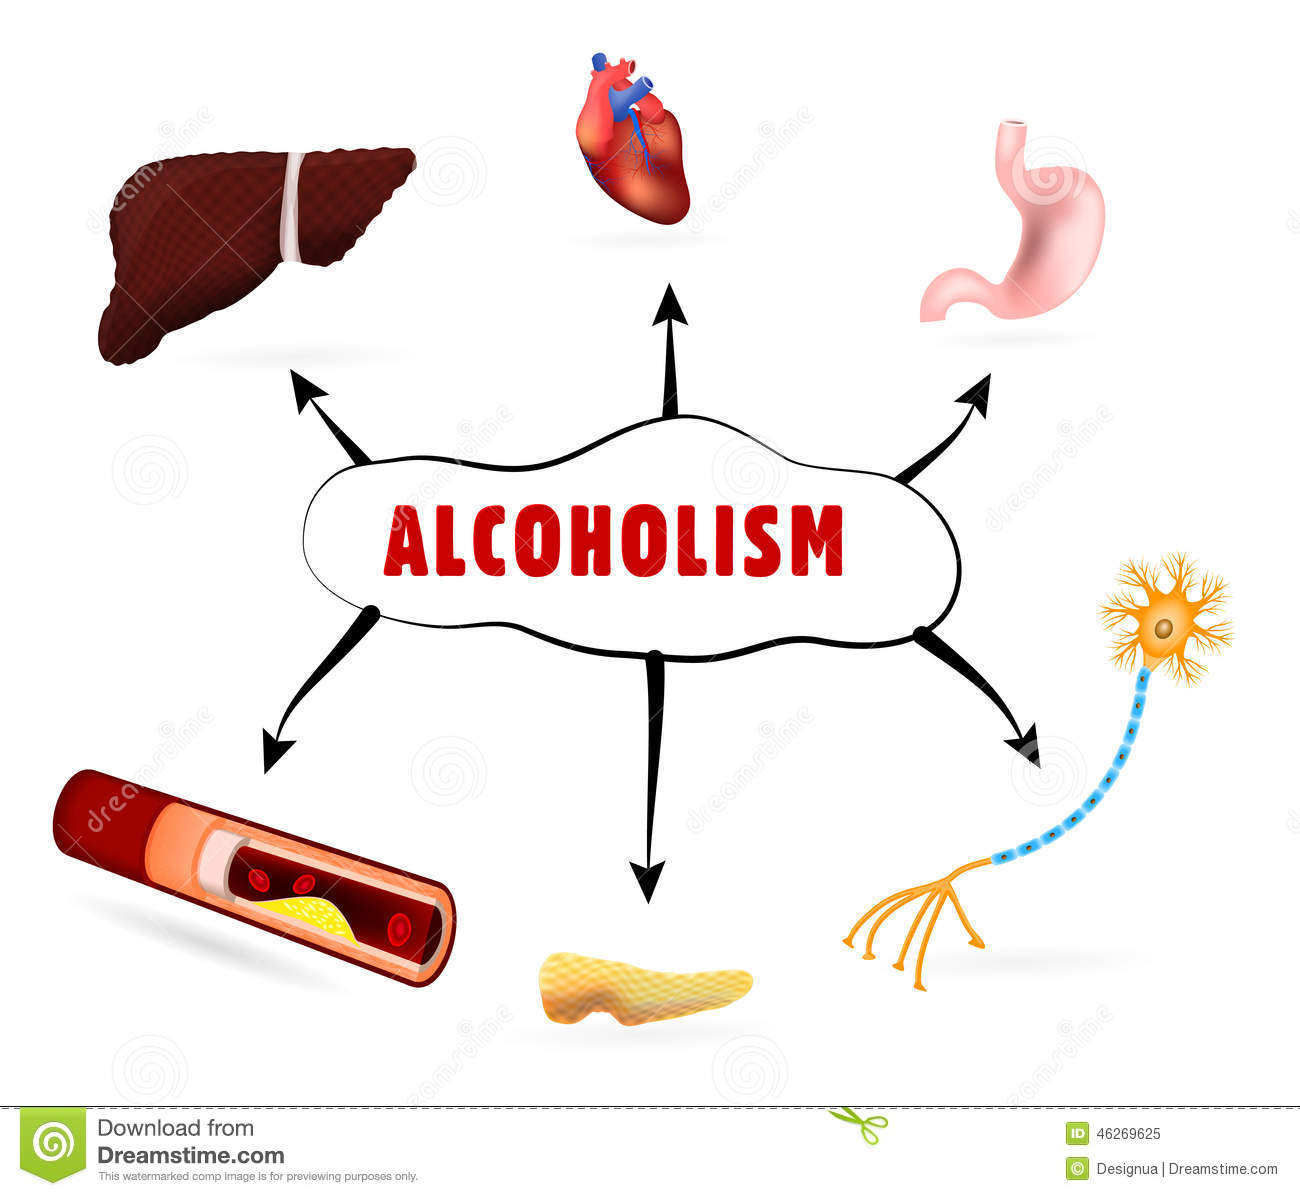 How alcohol affects the human body